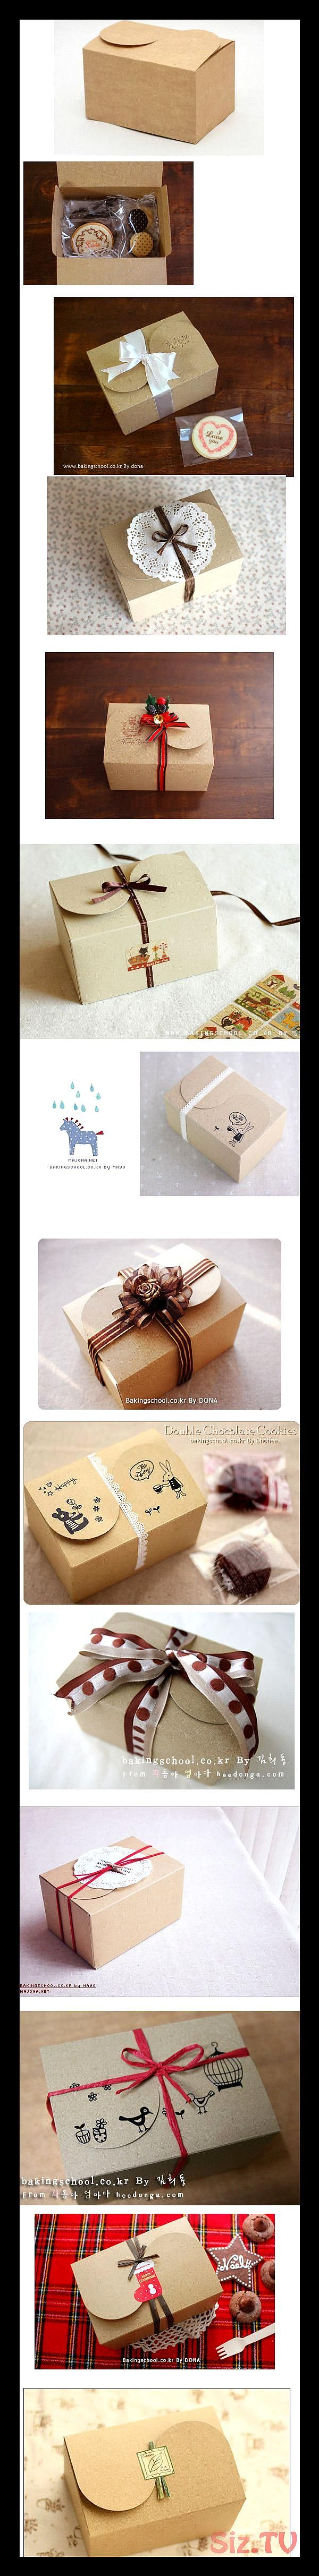 Free Shipping Cowhide floorcloth horse box cake box West box 15 10 5 8 5 cm paper bag packaging bag cookie bag cake bag-inPackaging Bags from IndustFree Shipping Cowhide floorcloth horse box cake box West box 15 10 5 8 5 cm paper bag packaging bag cookie bag cake bag-inPackaging Bags from IndustYossita Kurniawan Save Images Yossita Kurniawan Free Shipping Cowhide floorcloth horse box cake box West box 15 10 5 8 5 cm pape #baginpackaging #cookie #cowhide #floorcloth #flooringcheappaperbags #horse #paperbagflooring